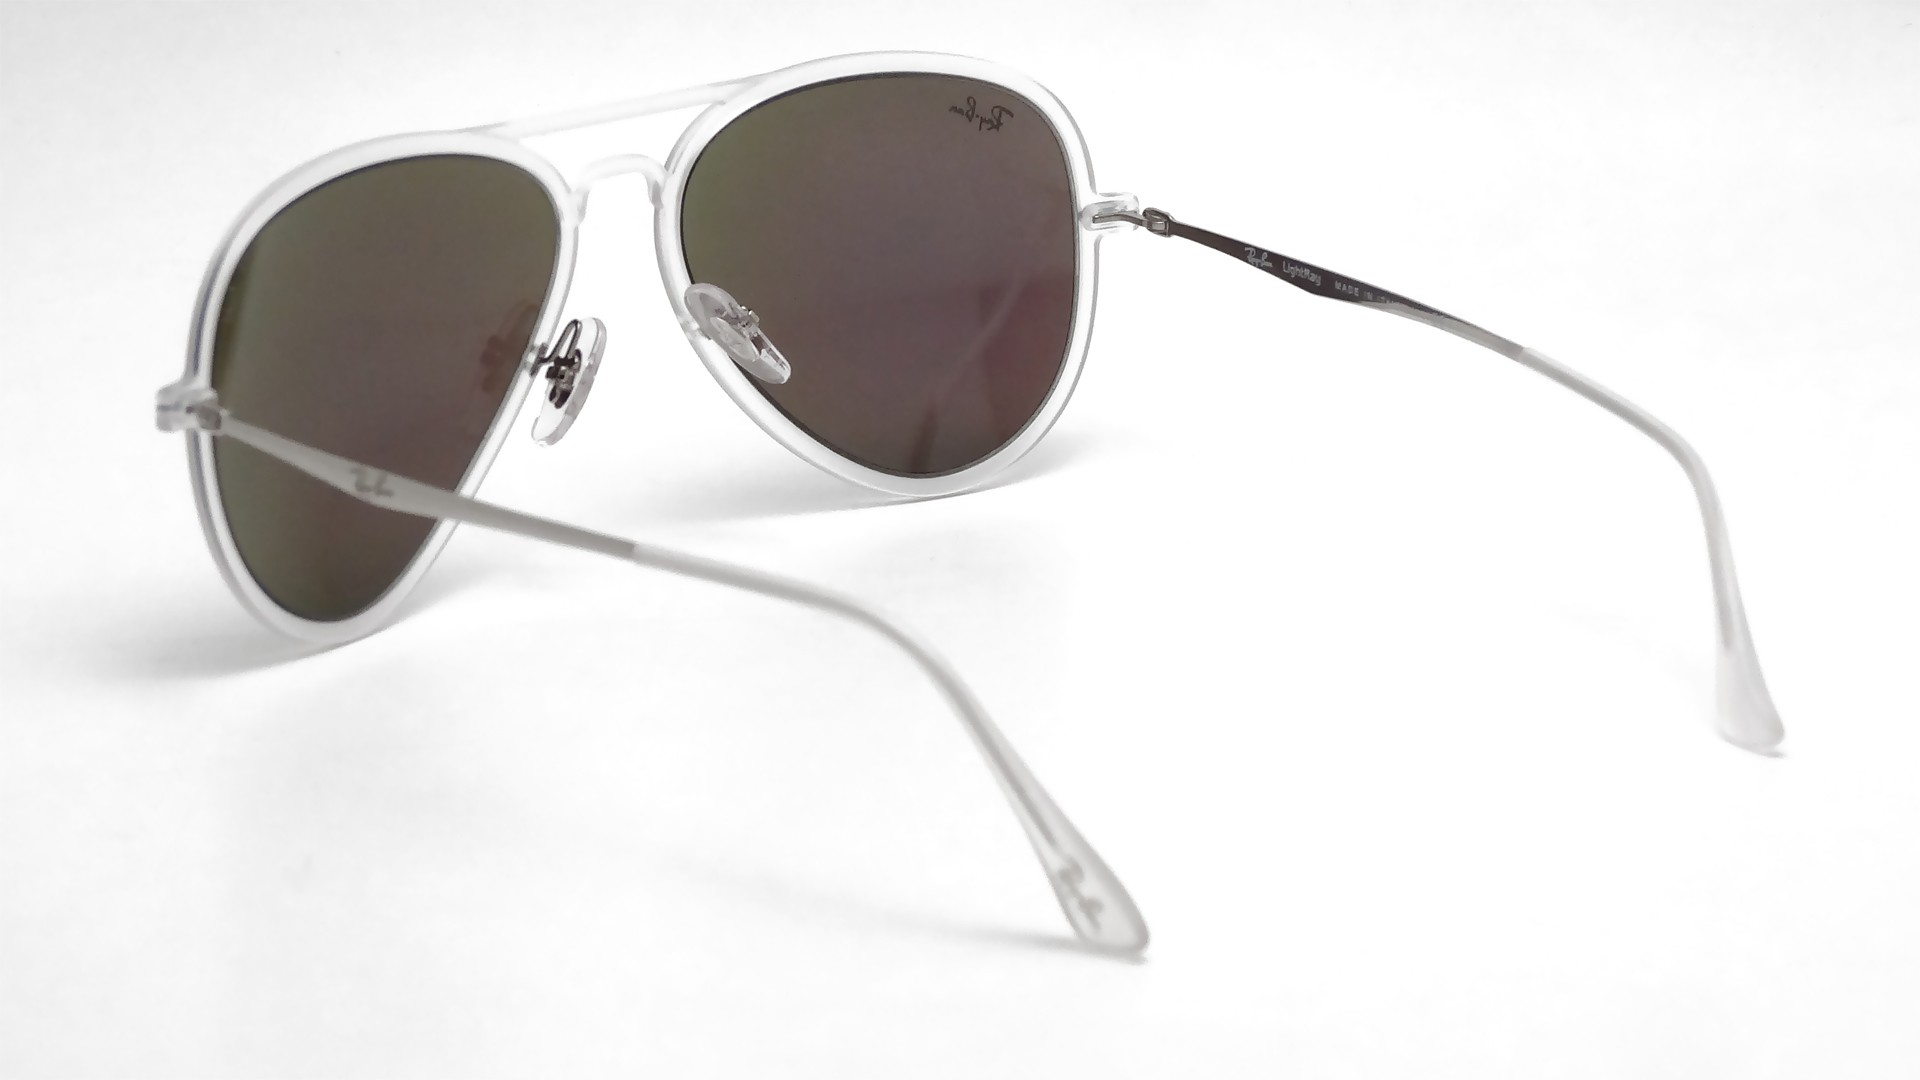 Ray Ban Aviator Light Ray Clear Matte Rb4211 646 3r 56 17